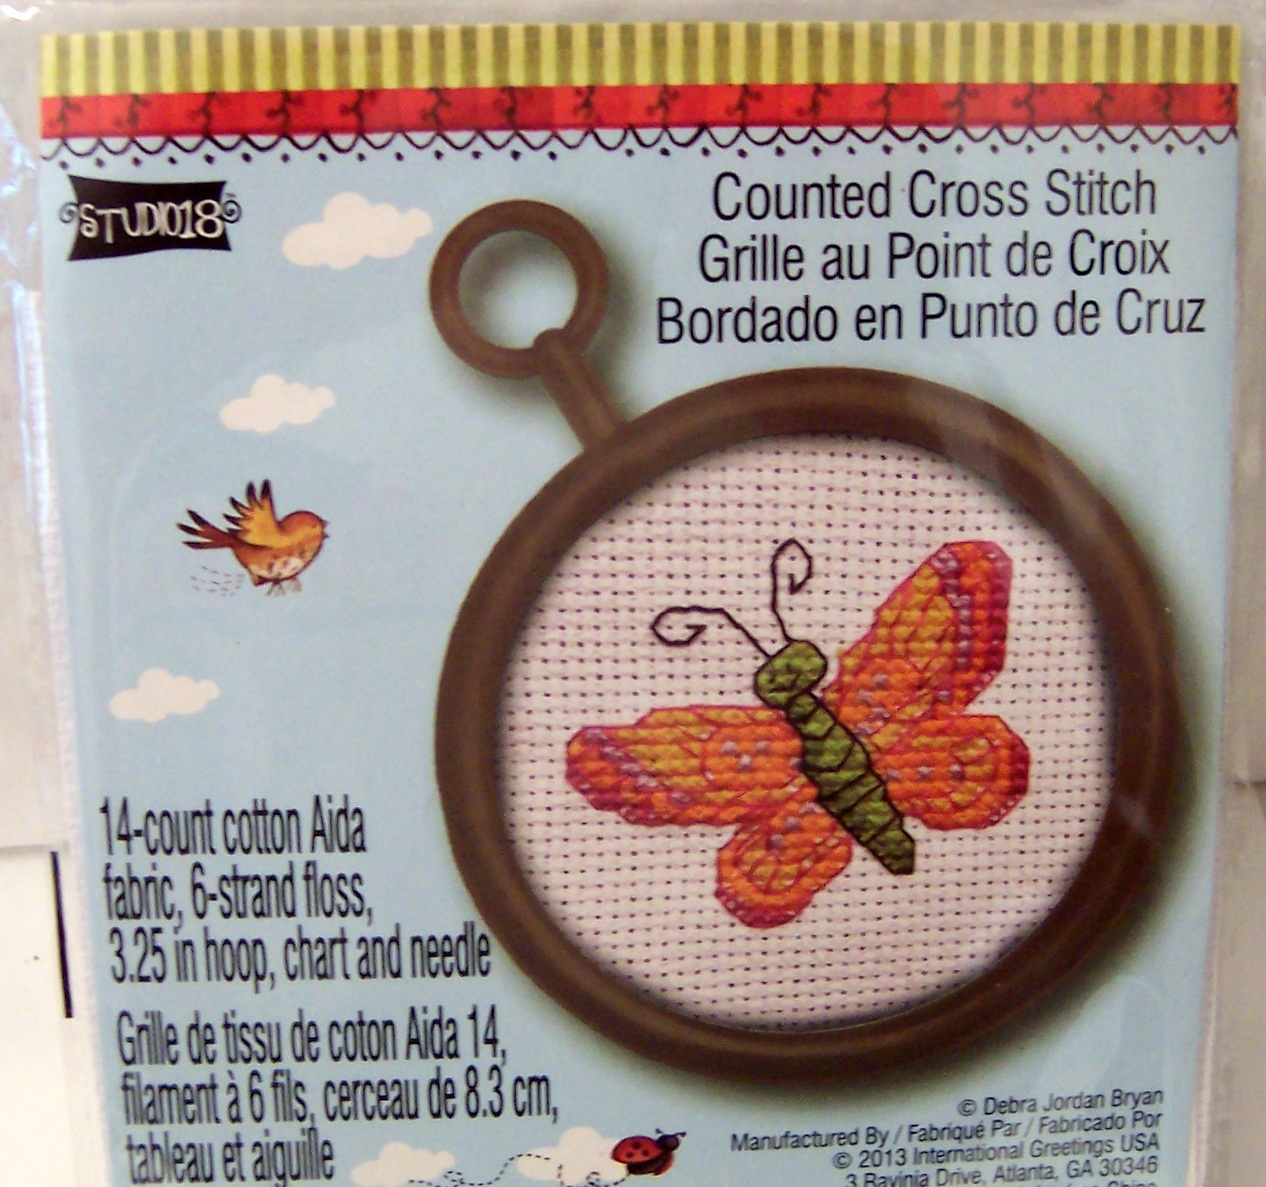 Studio18 Debra Jordan Bryan Butterfly Counted Cross Stitch New In